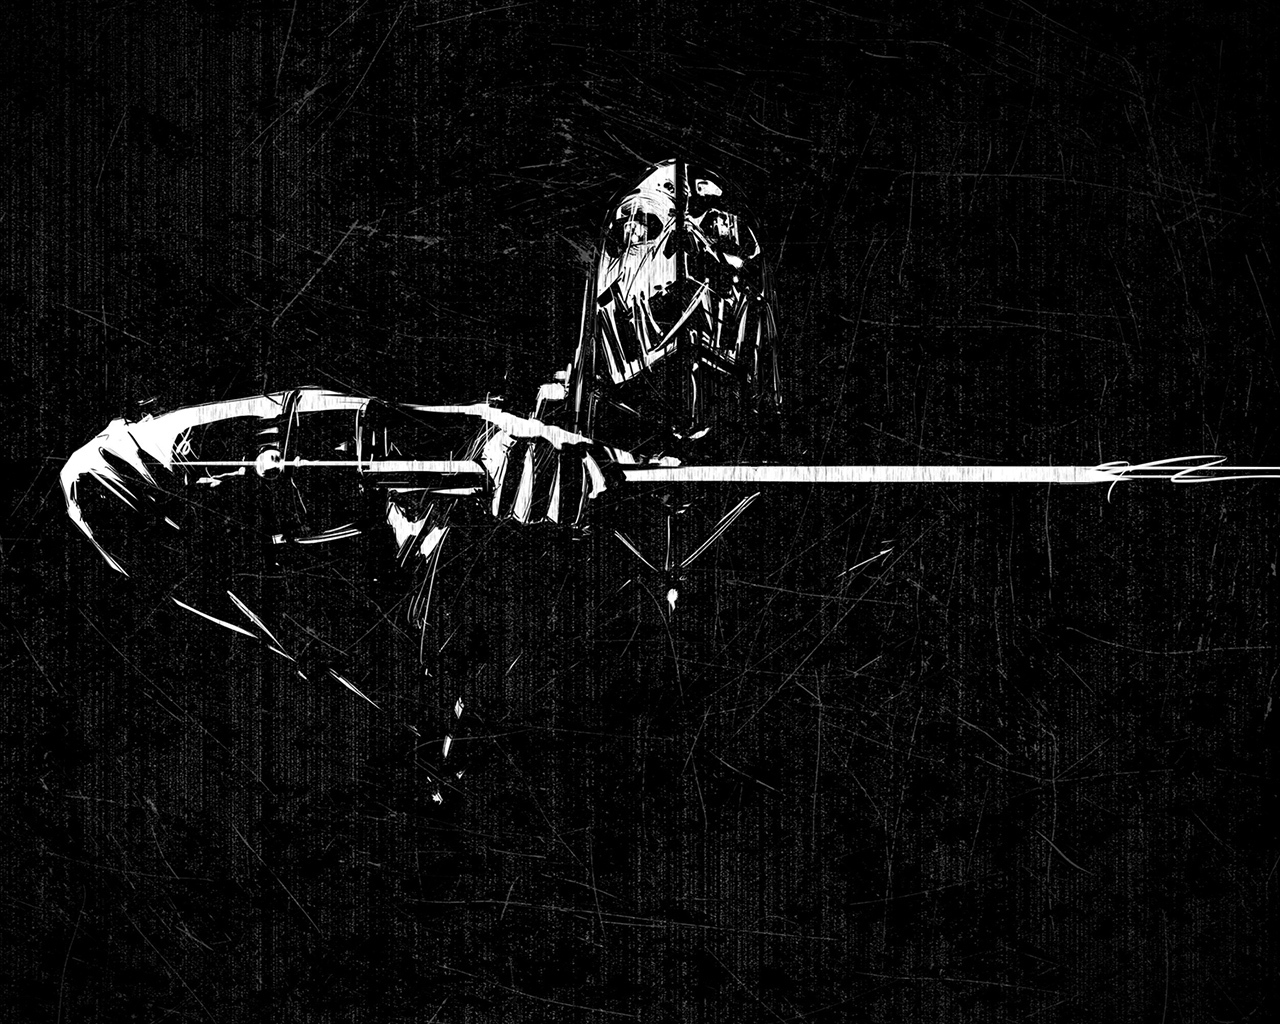 Dishonored Scraped Minimal for 1280 x 1024 resolution